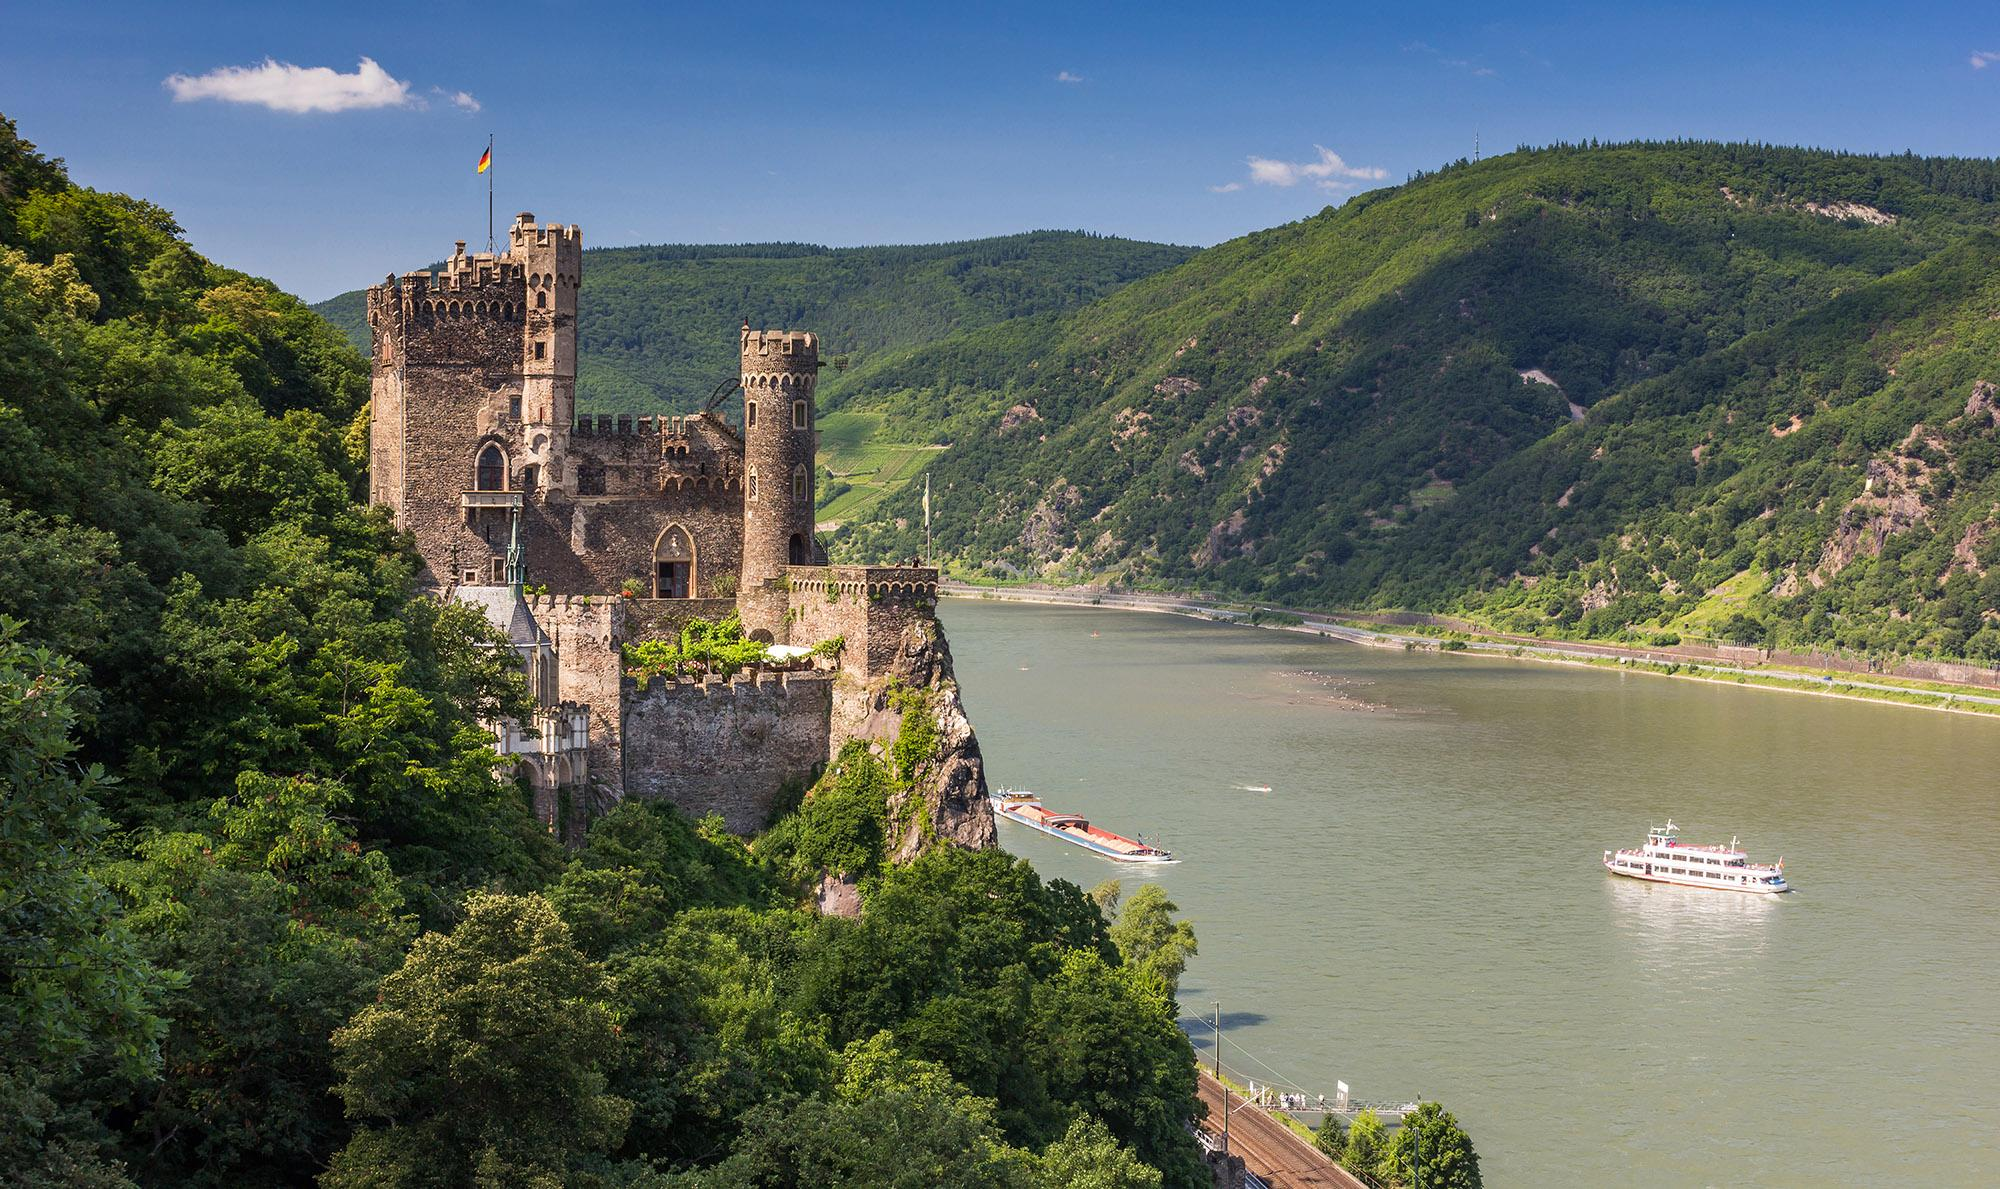 The romantic Rheinstein Castle overlooks the Rhine river. For its diverse culture and undeniable beauty, UNESCO declared the region a World Heritage Site in 2002. – © Kanuman / Shutterstock